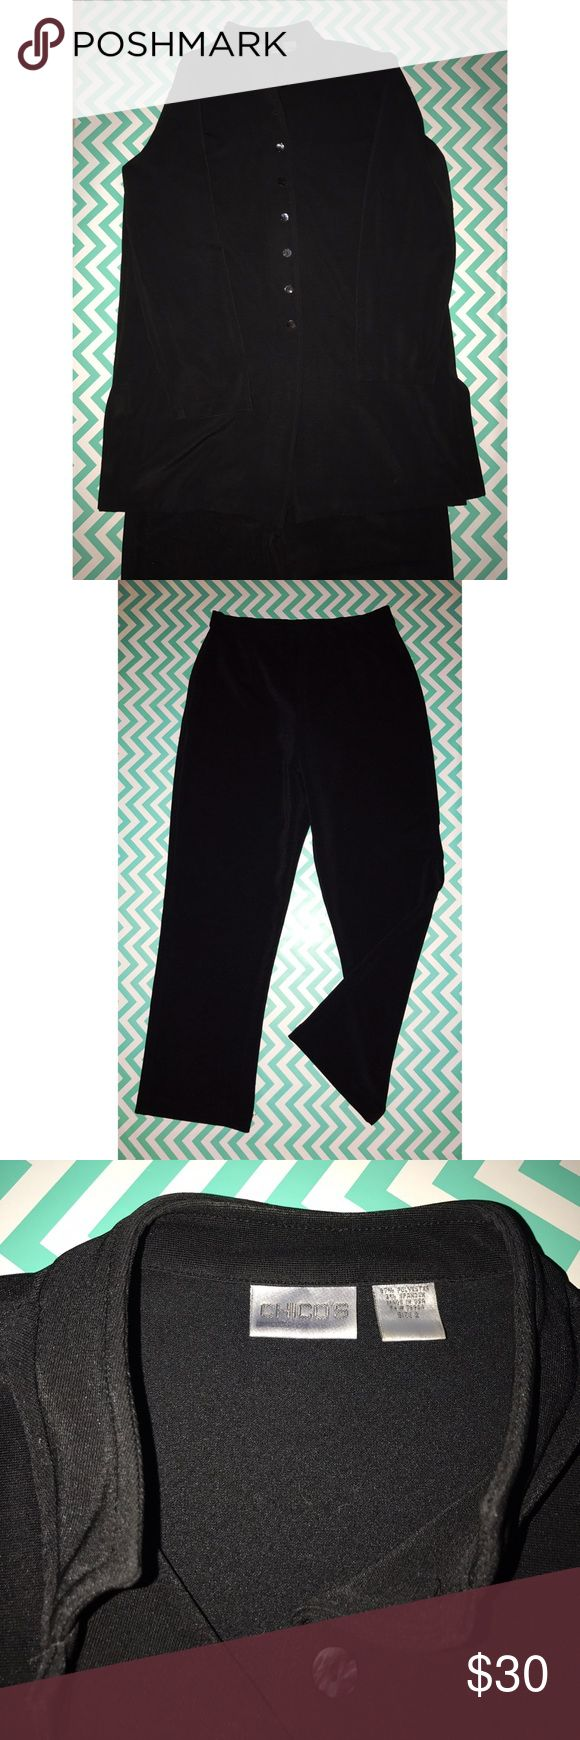 Chicos leisure travel suit This Black chicos leisure travel suite is a size chicos 2 which is a regular USA 10/12. This suit is wash a wear wrinkle free! The waste band on the pants is an elastic waist band. There is light fading in the inside of the collar. Chico's Other